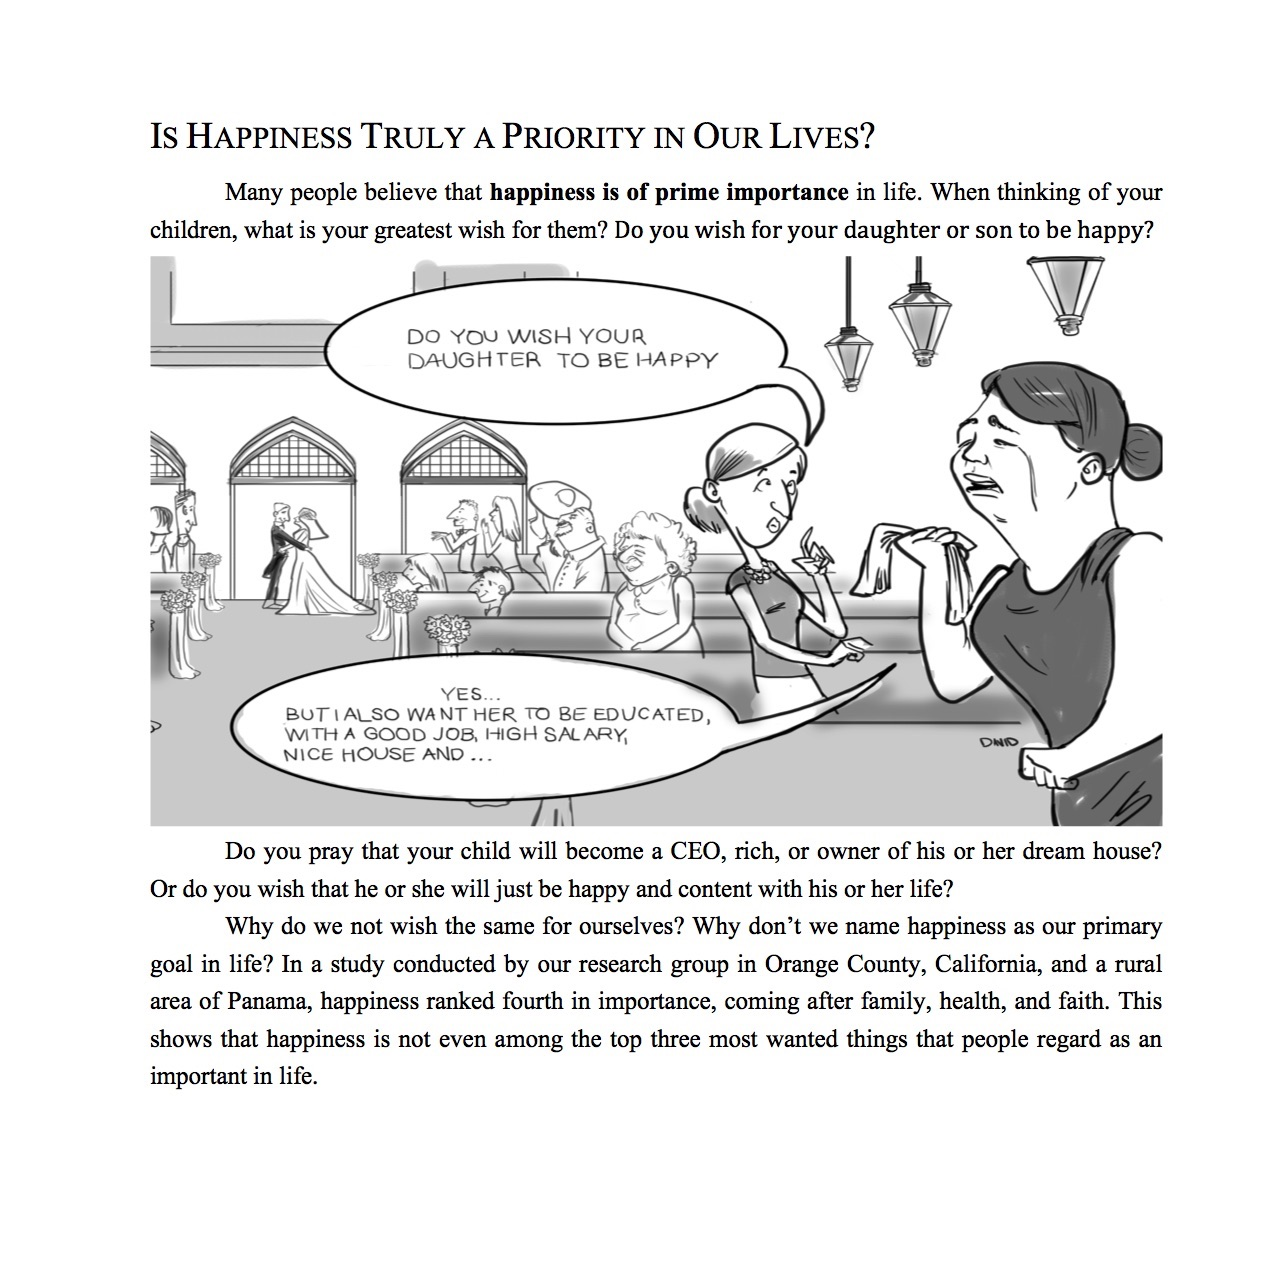 Happiness-Book-V70 final first  chapter page 6.jpg